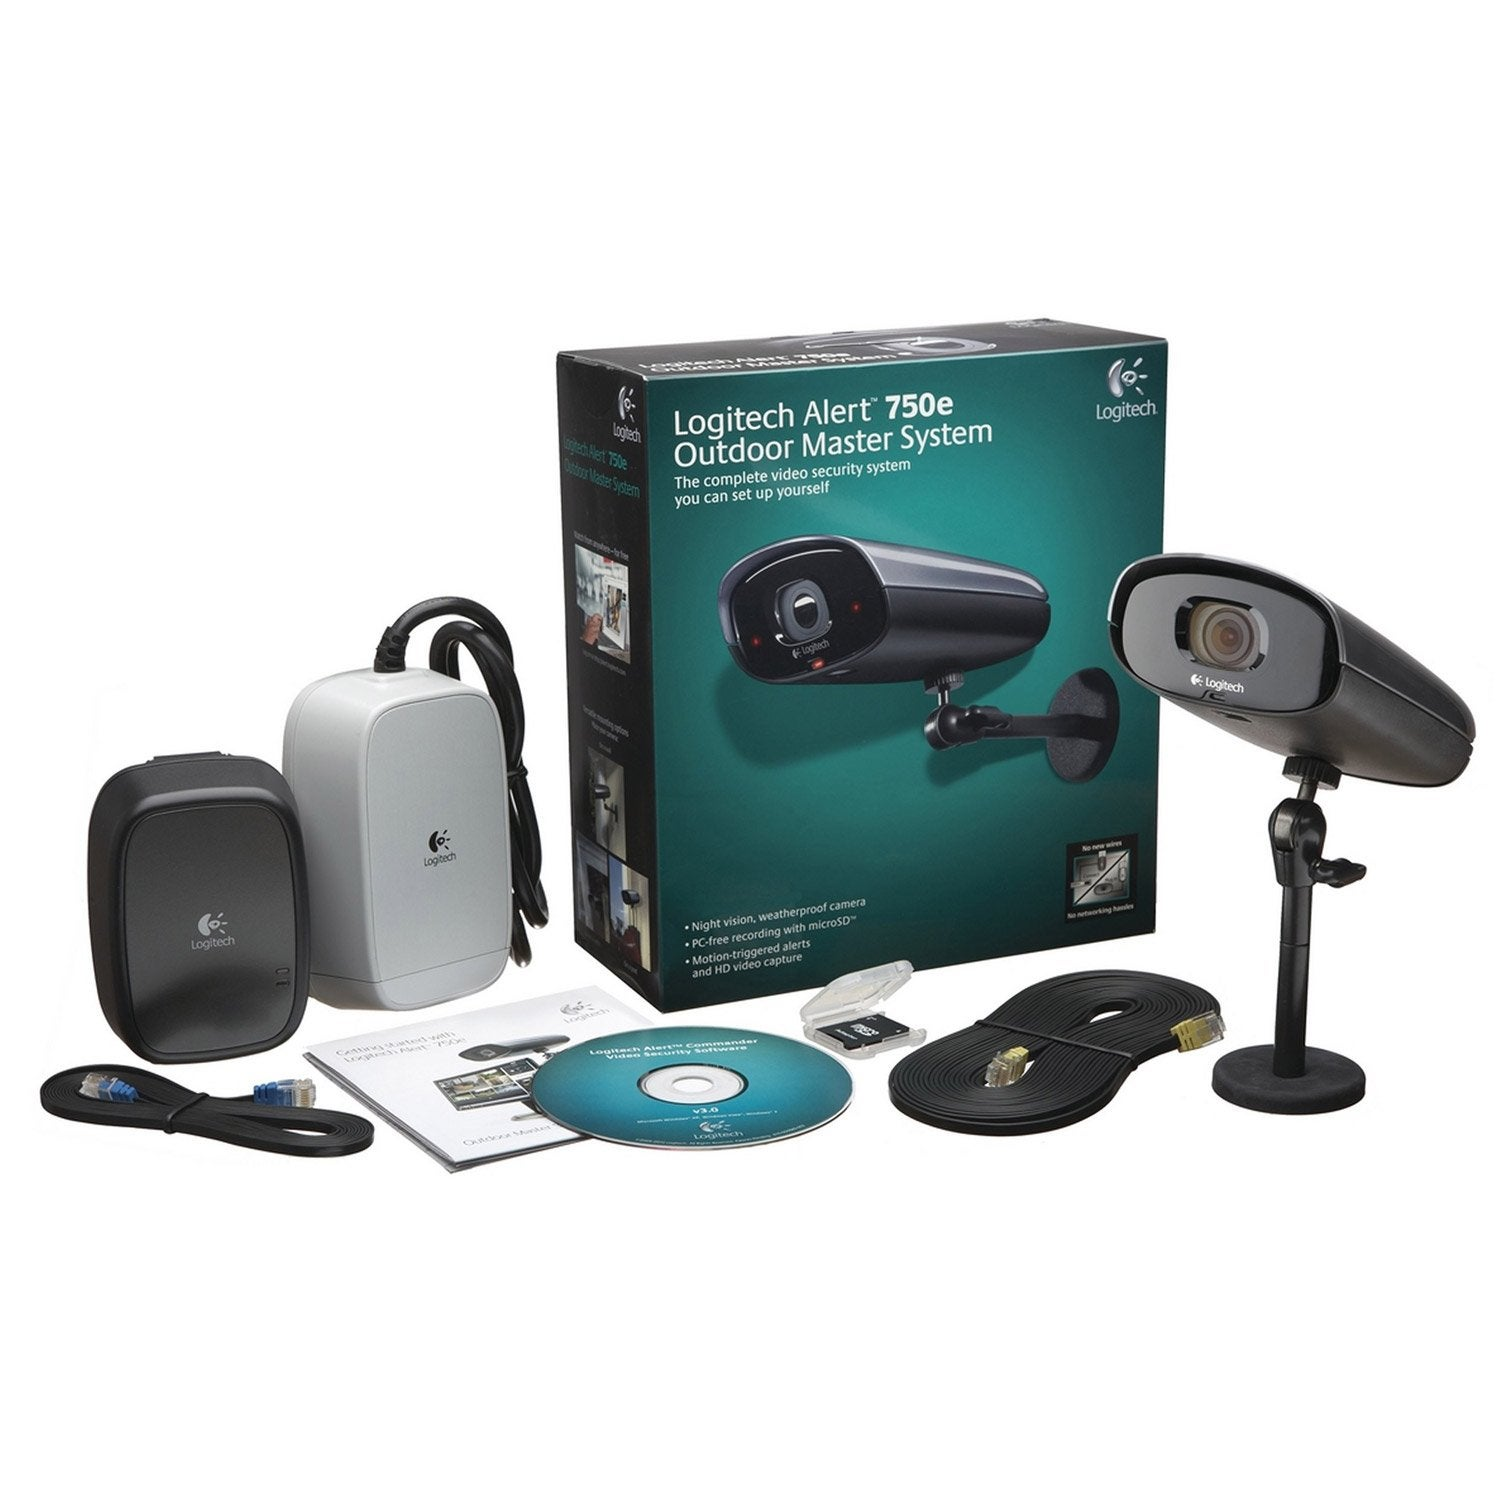 kit de vid osurveillance filaire logitech 961 000341 leroy merlin. Black Bedroom Furniture Sets. Home Design Ideas